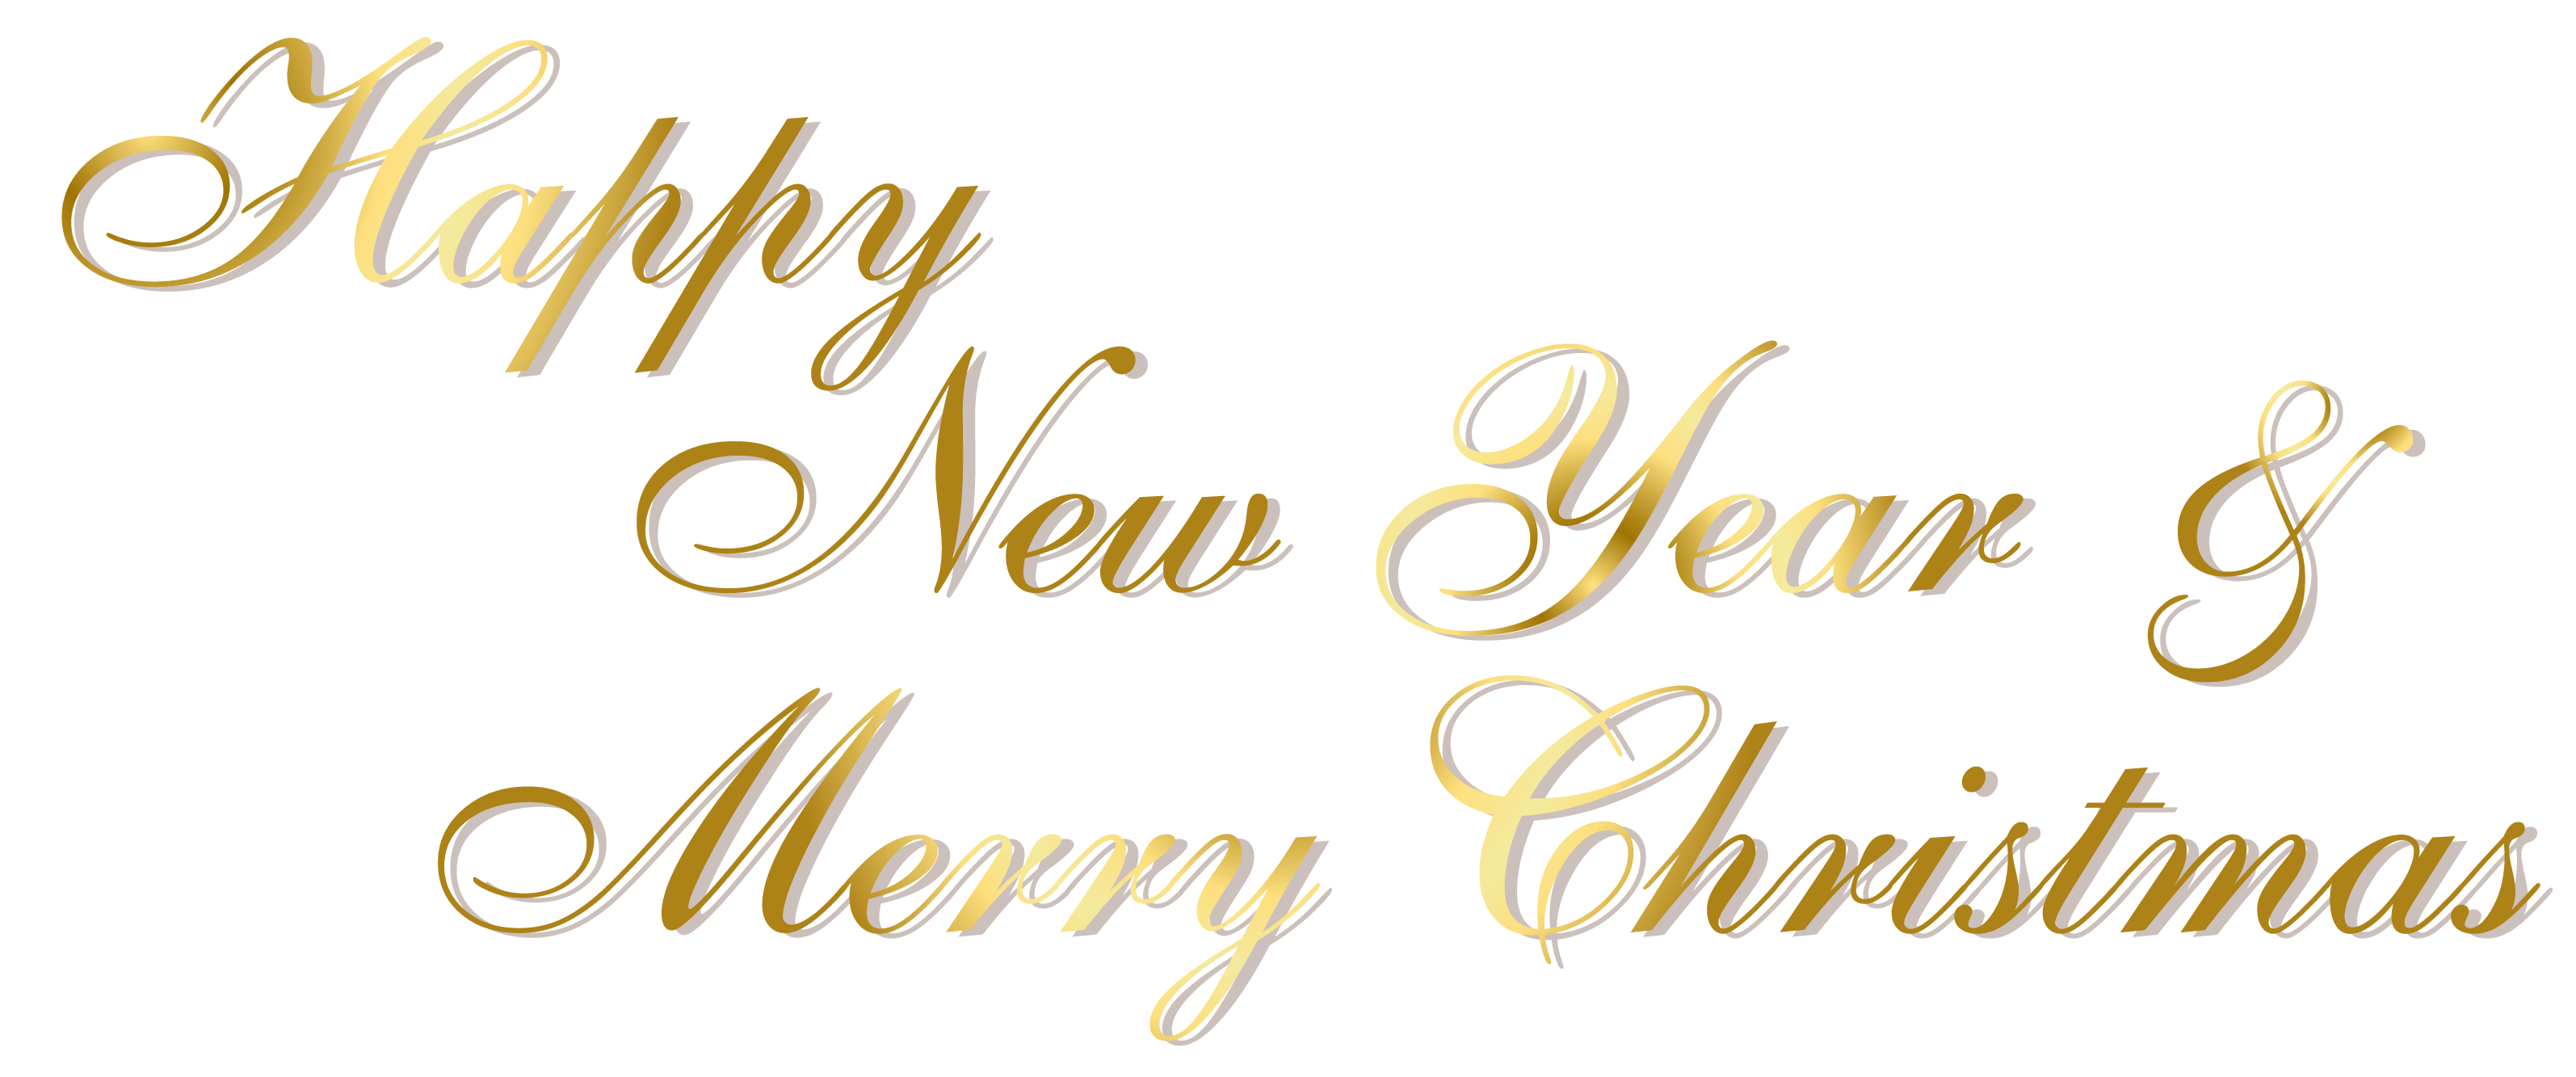 Merry Christmas And Happy New Year Png, Vector, PSD, and Clipart With  Transparent Background for Free Download | Pngtree